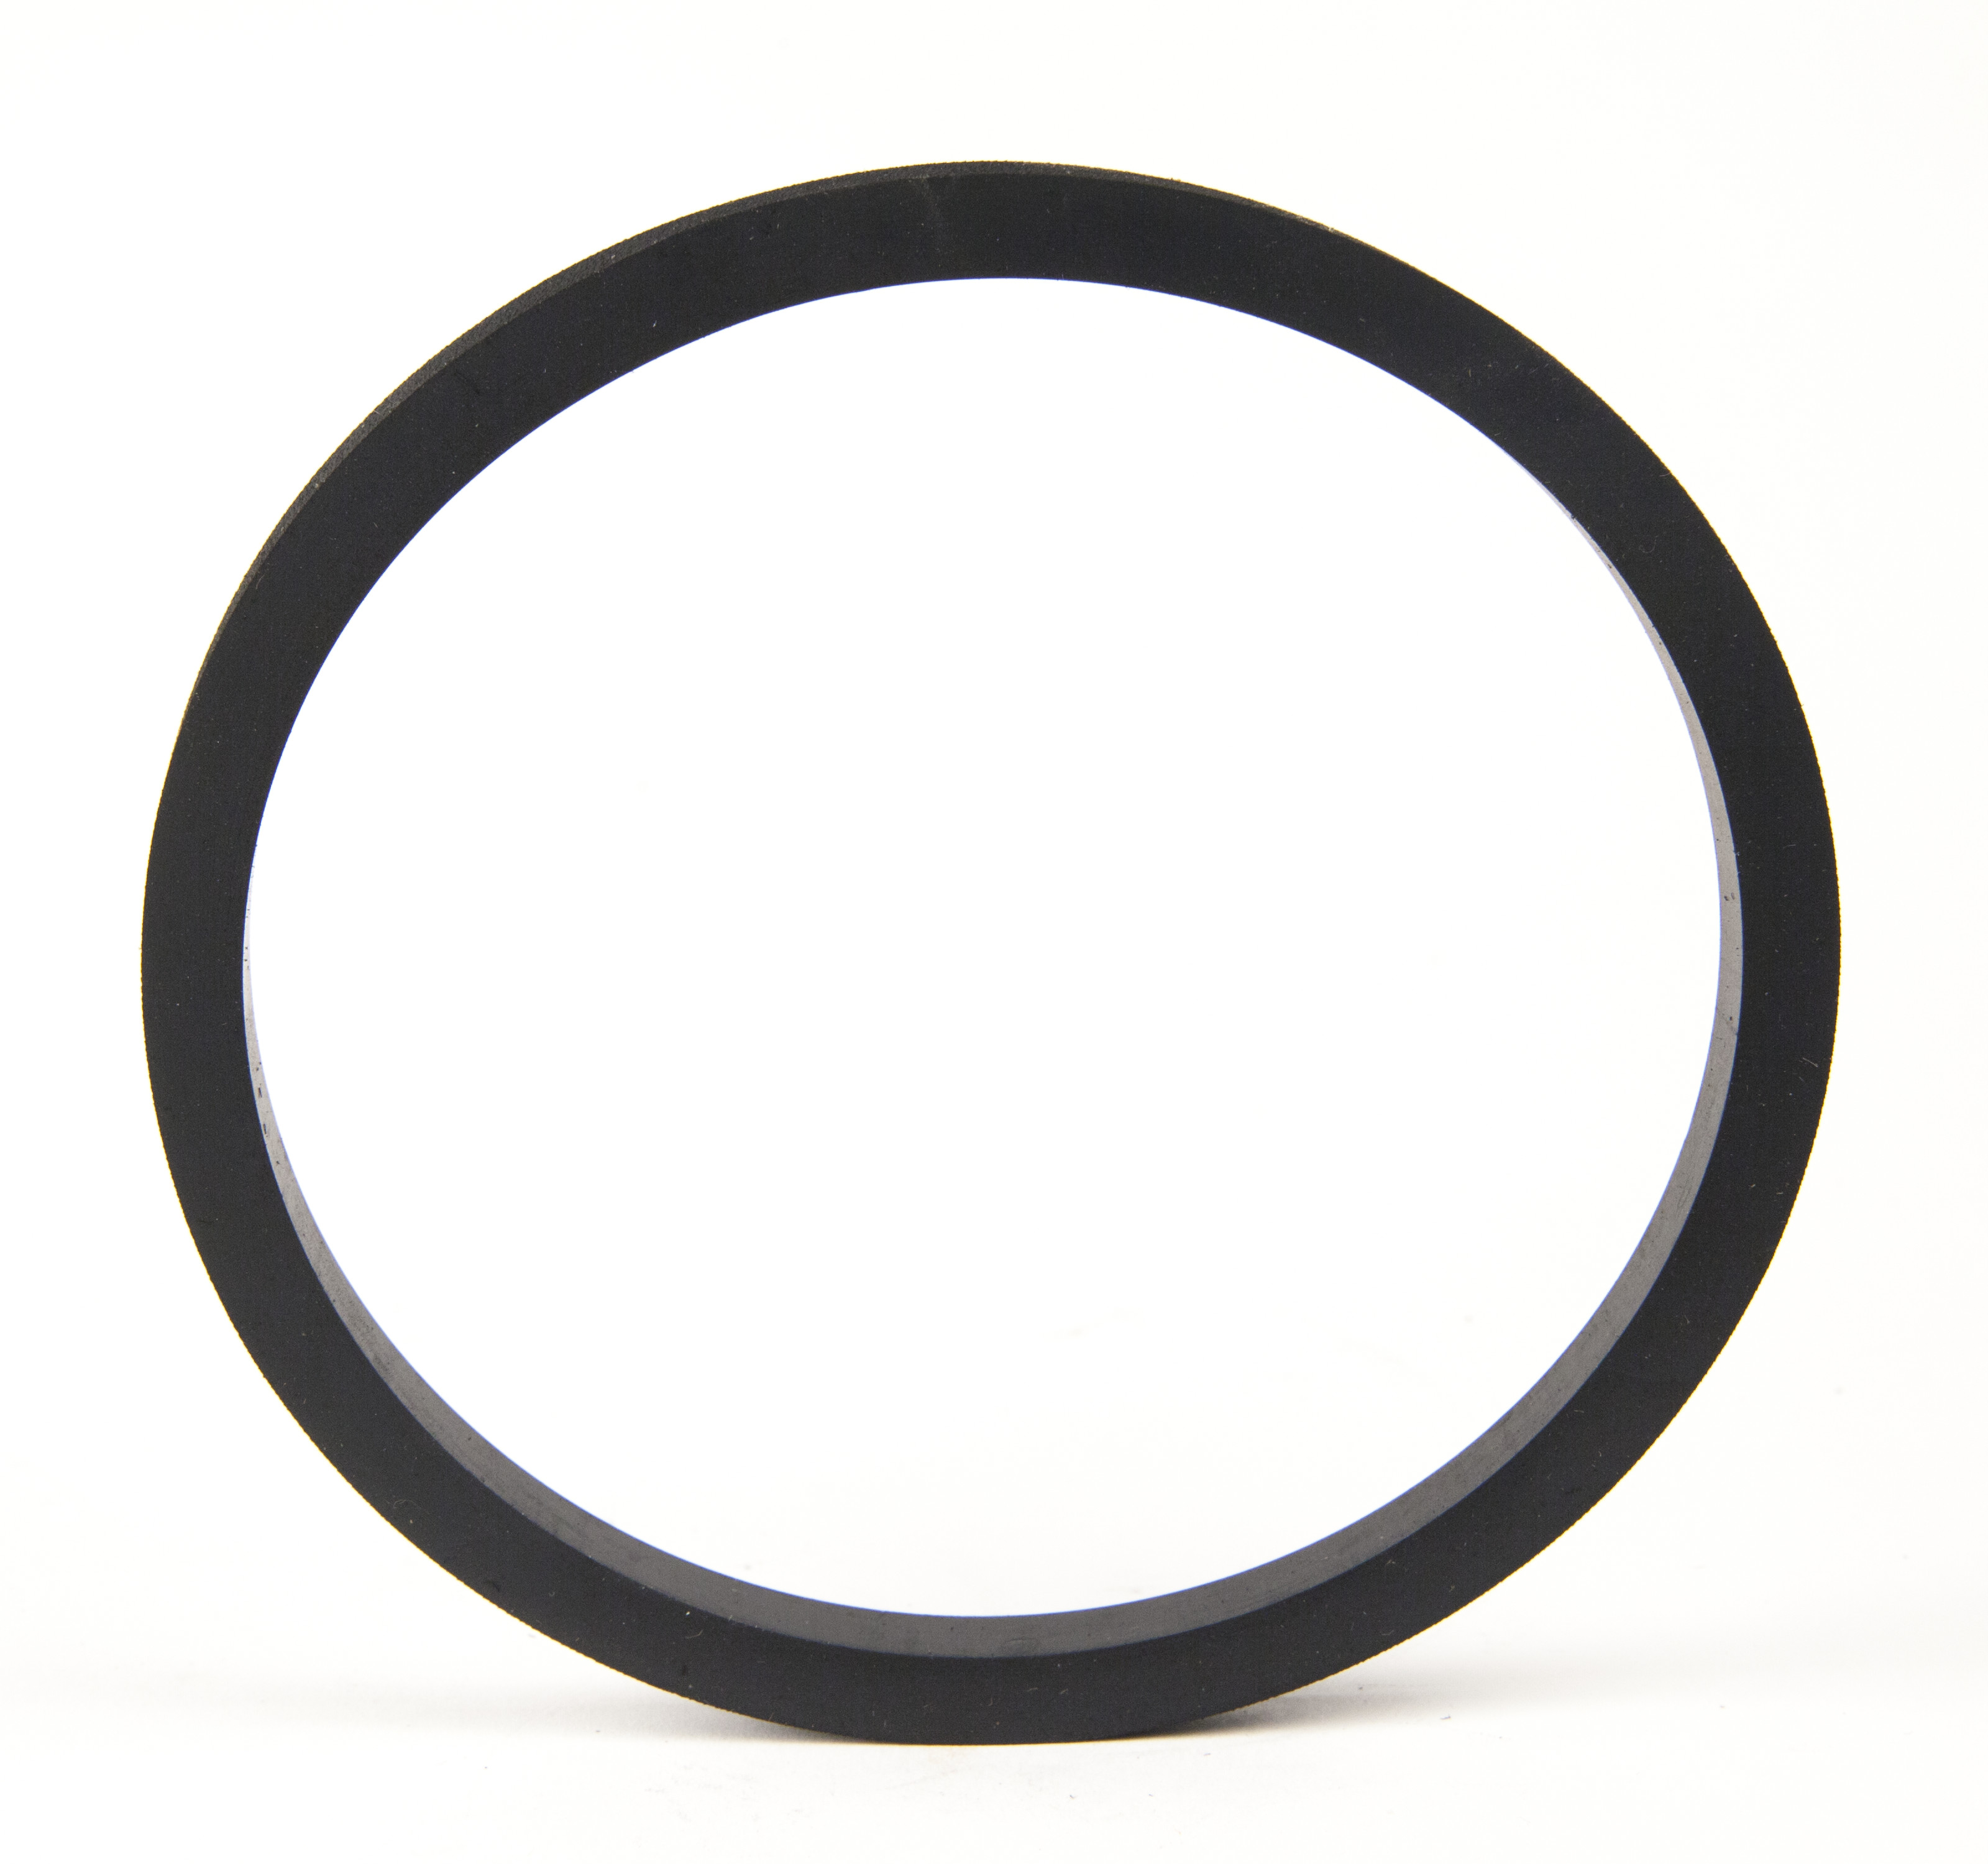 Stainless Steel Sprayer Lid Gasket